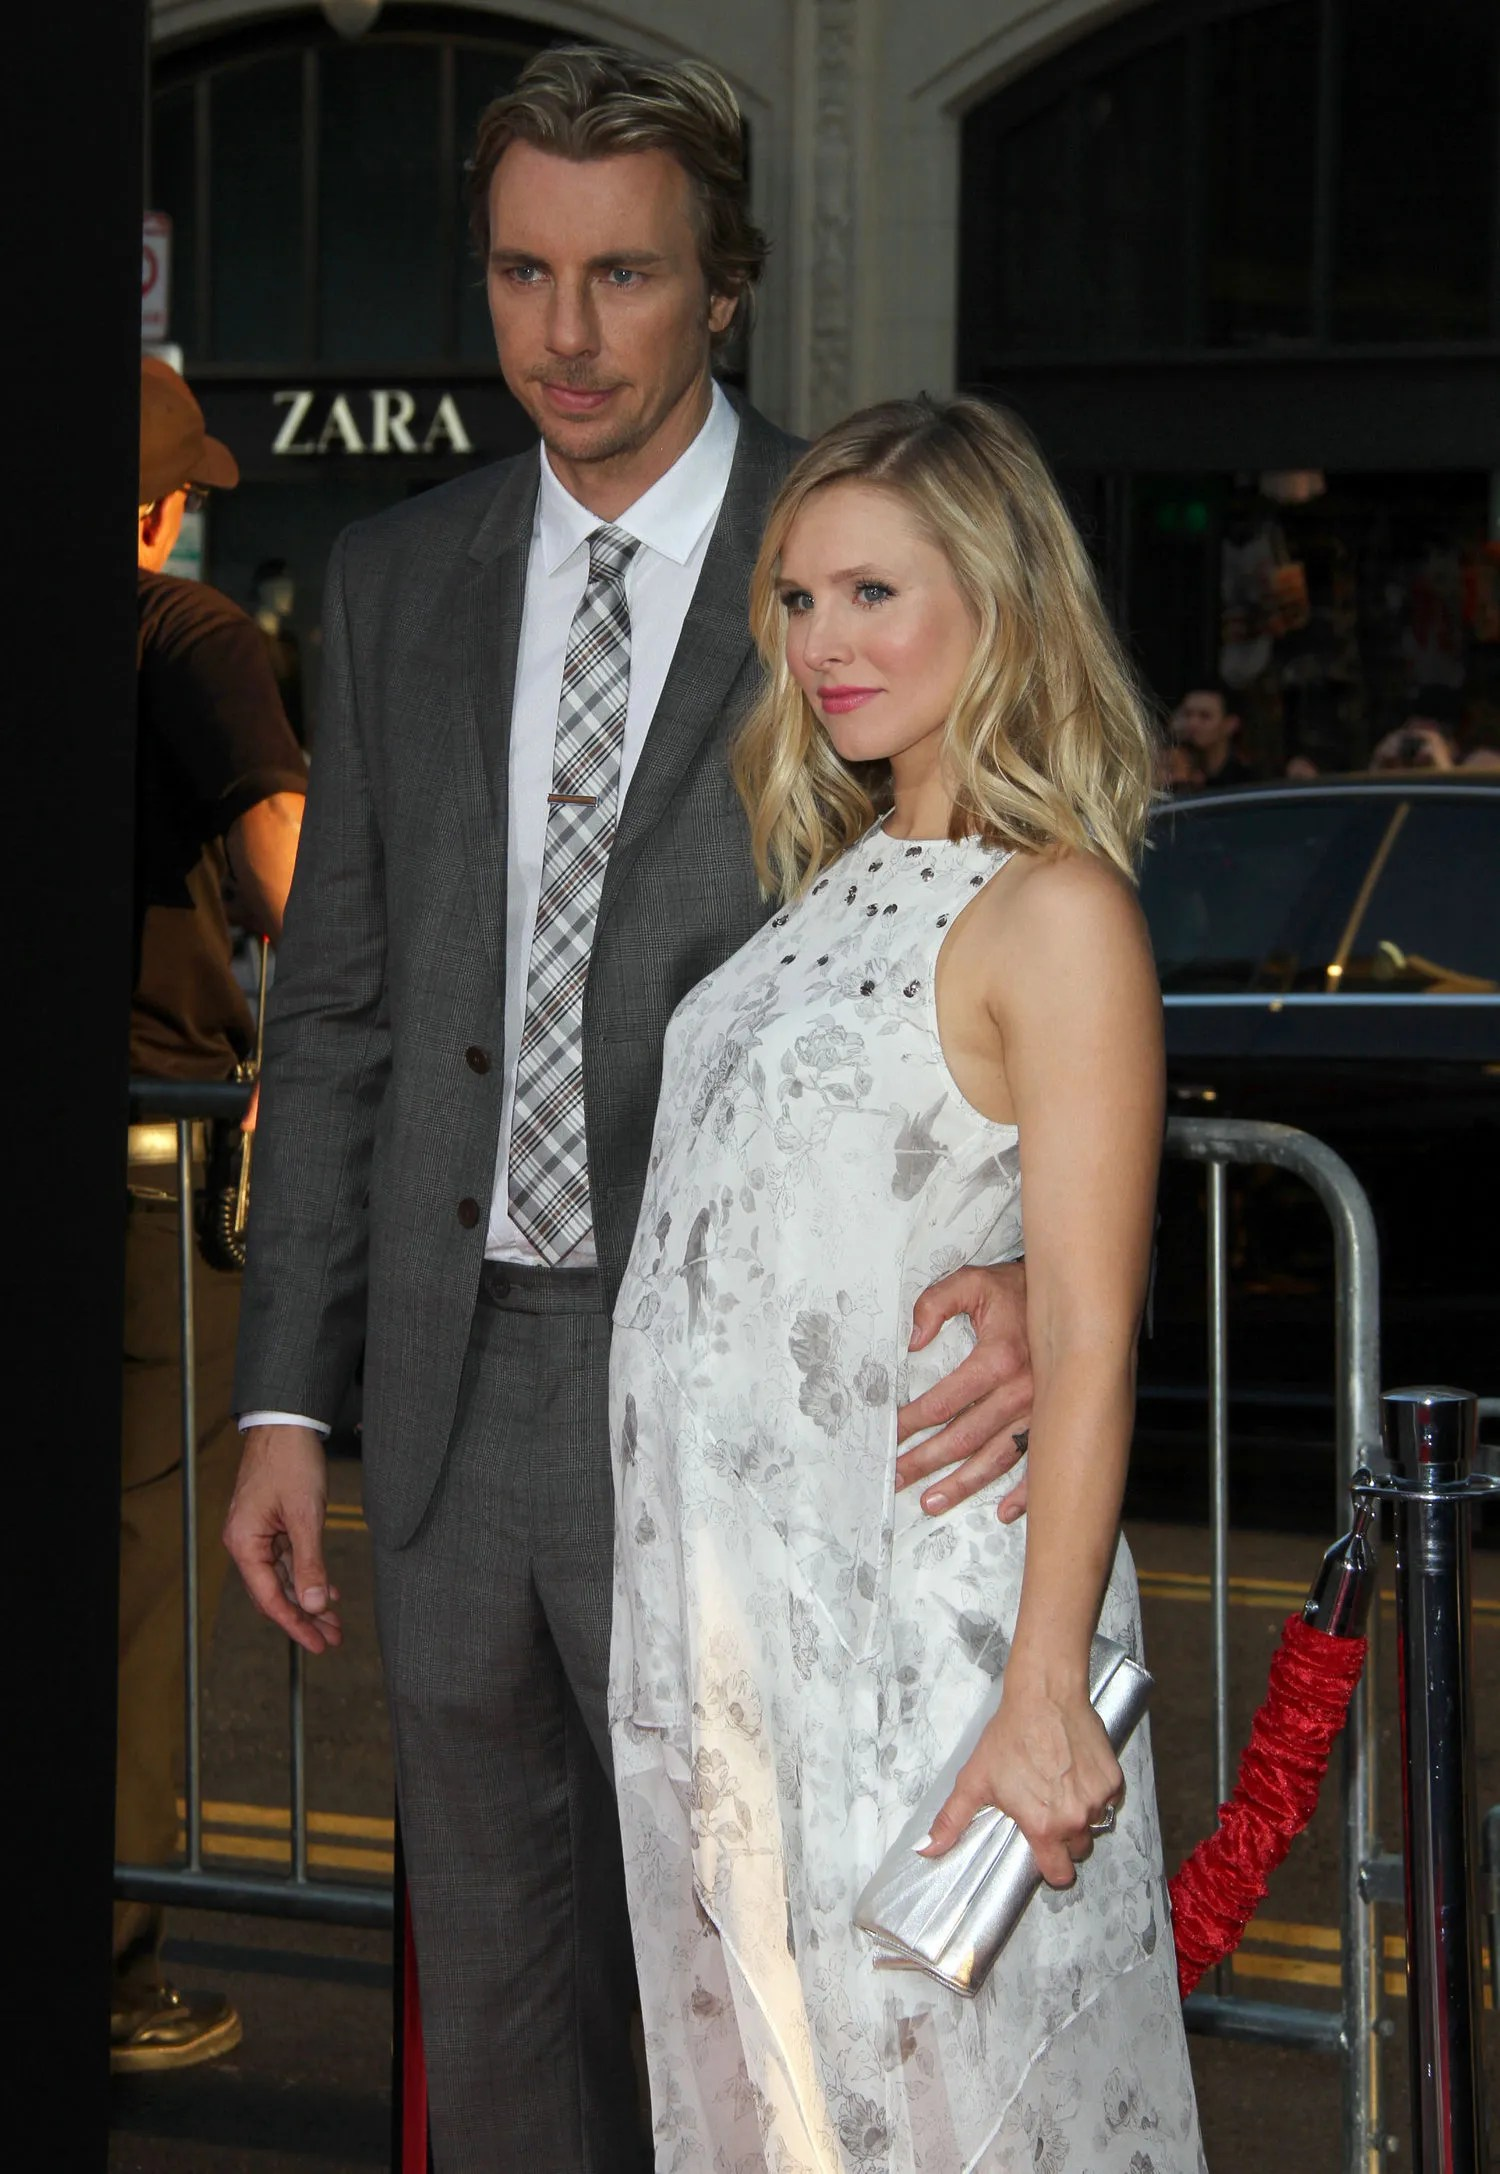 Dax Shepard Tattoos : shepard, tattoos, Shepard, Tattoo, Picture,, Kristen, Engagement, Ring;, Celebrity, Weddings, Glamour